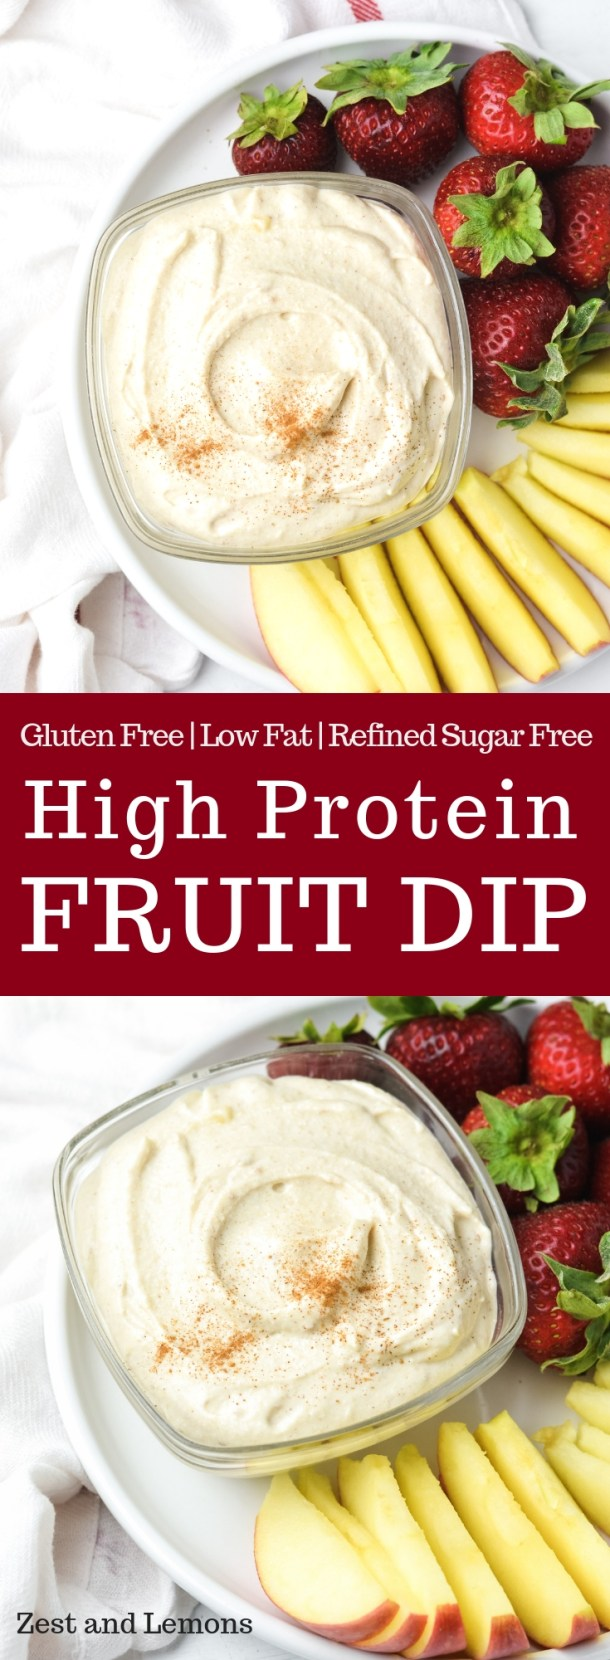 Healthier high protein fruit dip made from cottage cheese - Zest and Lemons #glutenfree #snackdip #dessertdip